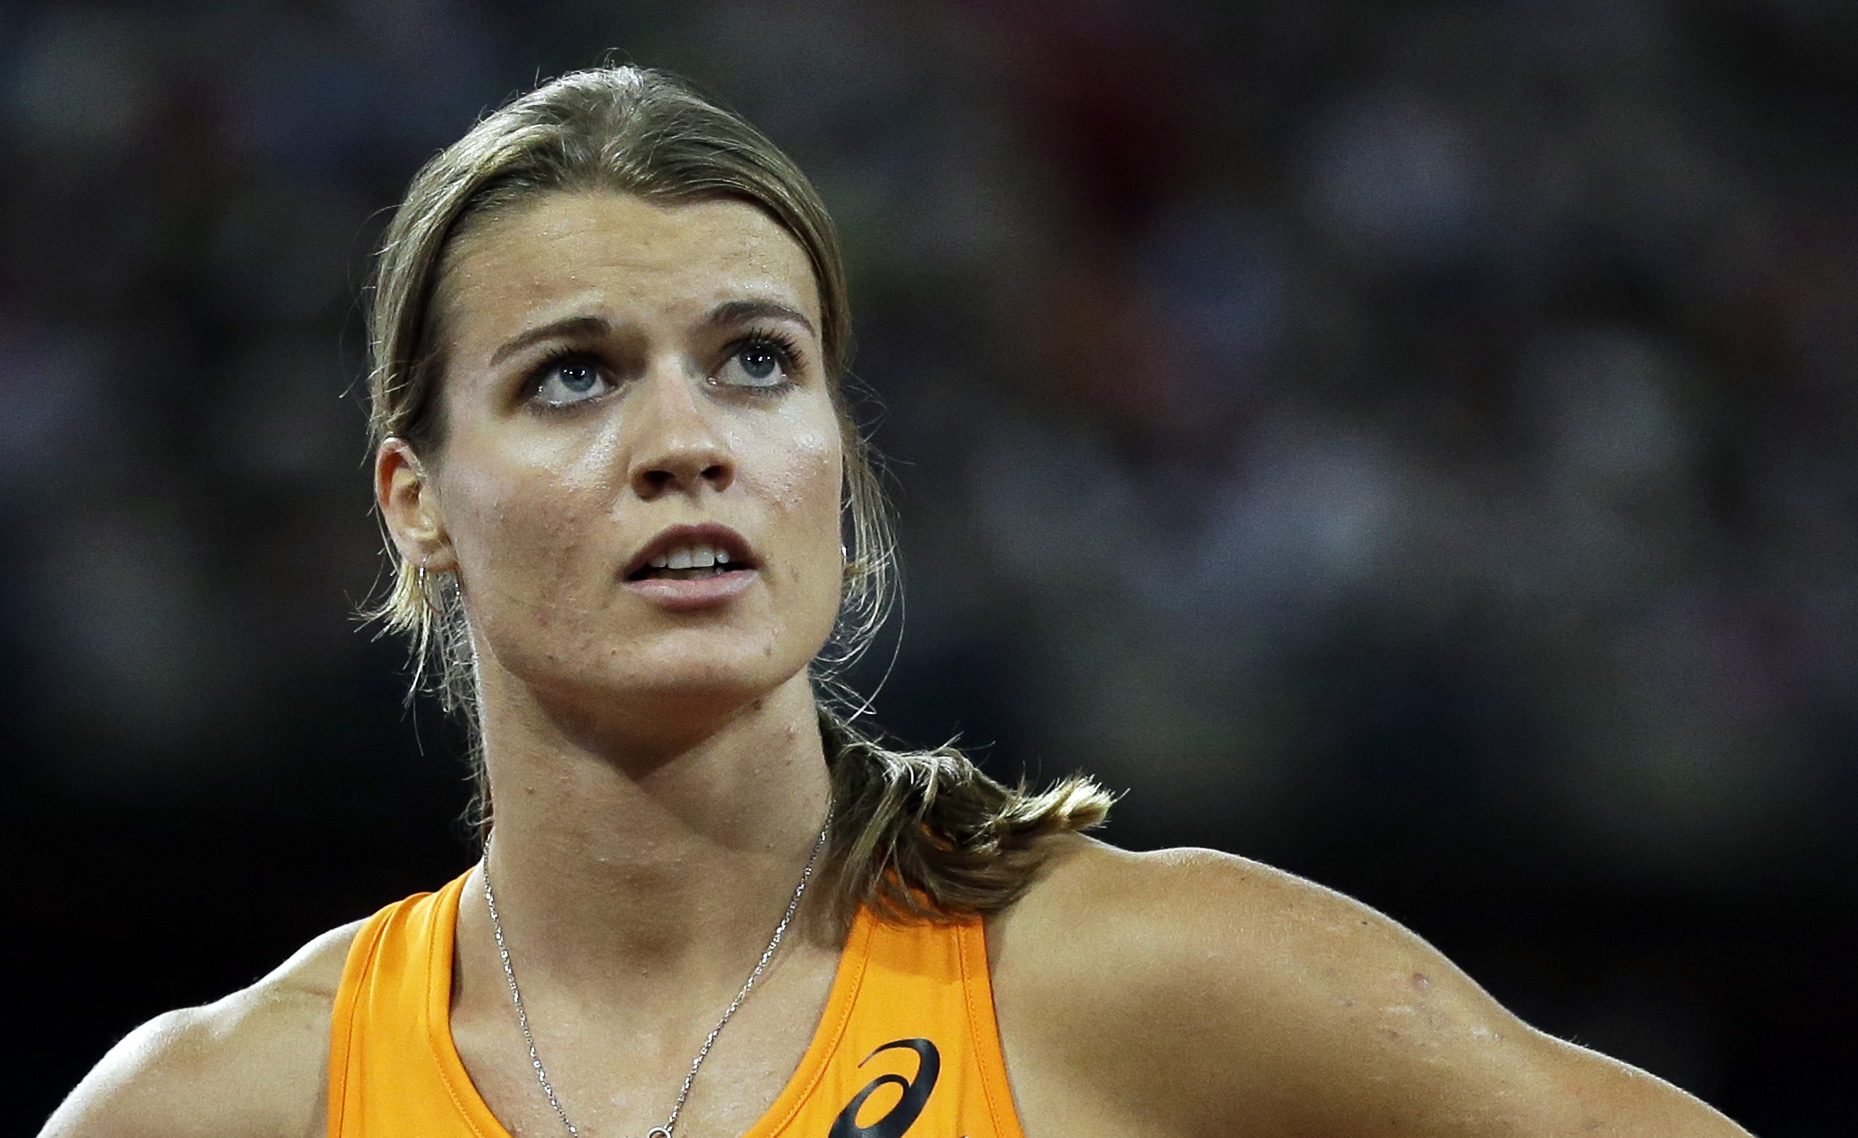 FILE - In this Aug. 27, 2015 file photo, Netherlands' Dafne Schippers looks at the results from her women's 200-meter semifinal at the World Athletics Championships at the Bird's Nest stadium in Beijing, China. Schippers will compete in the sprinting even